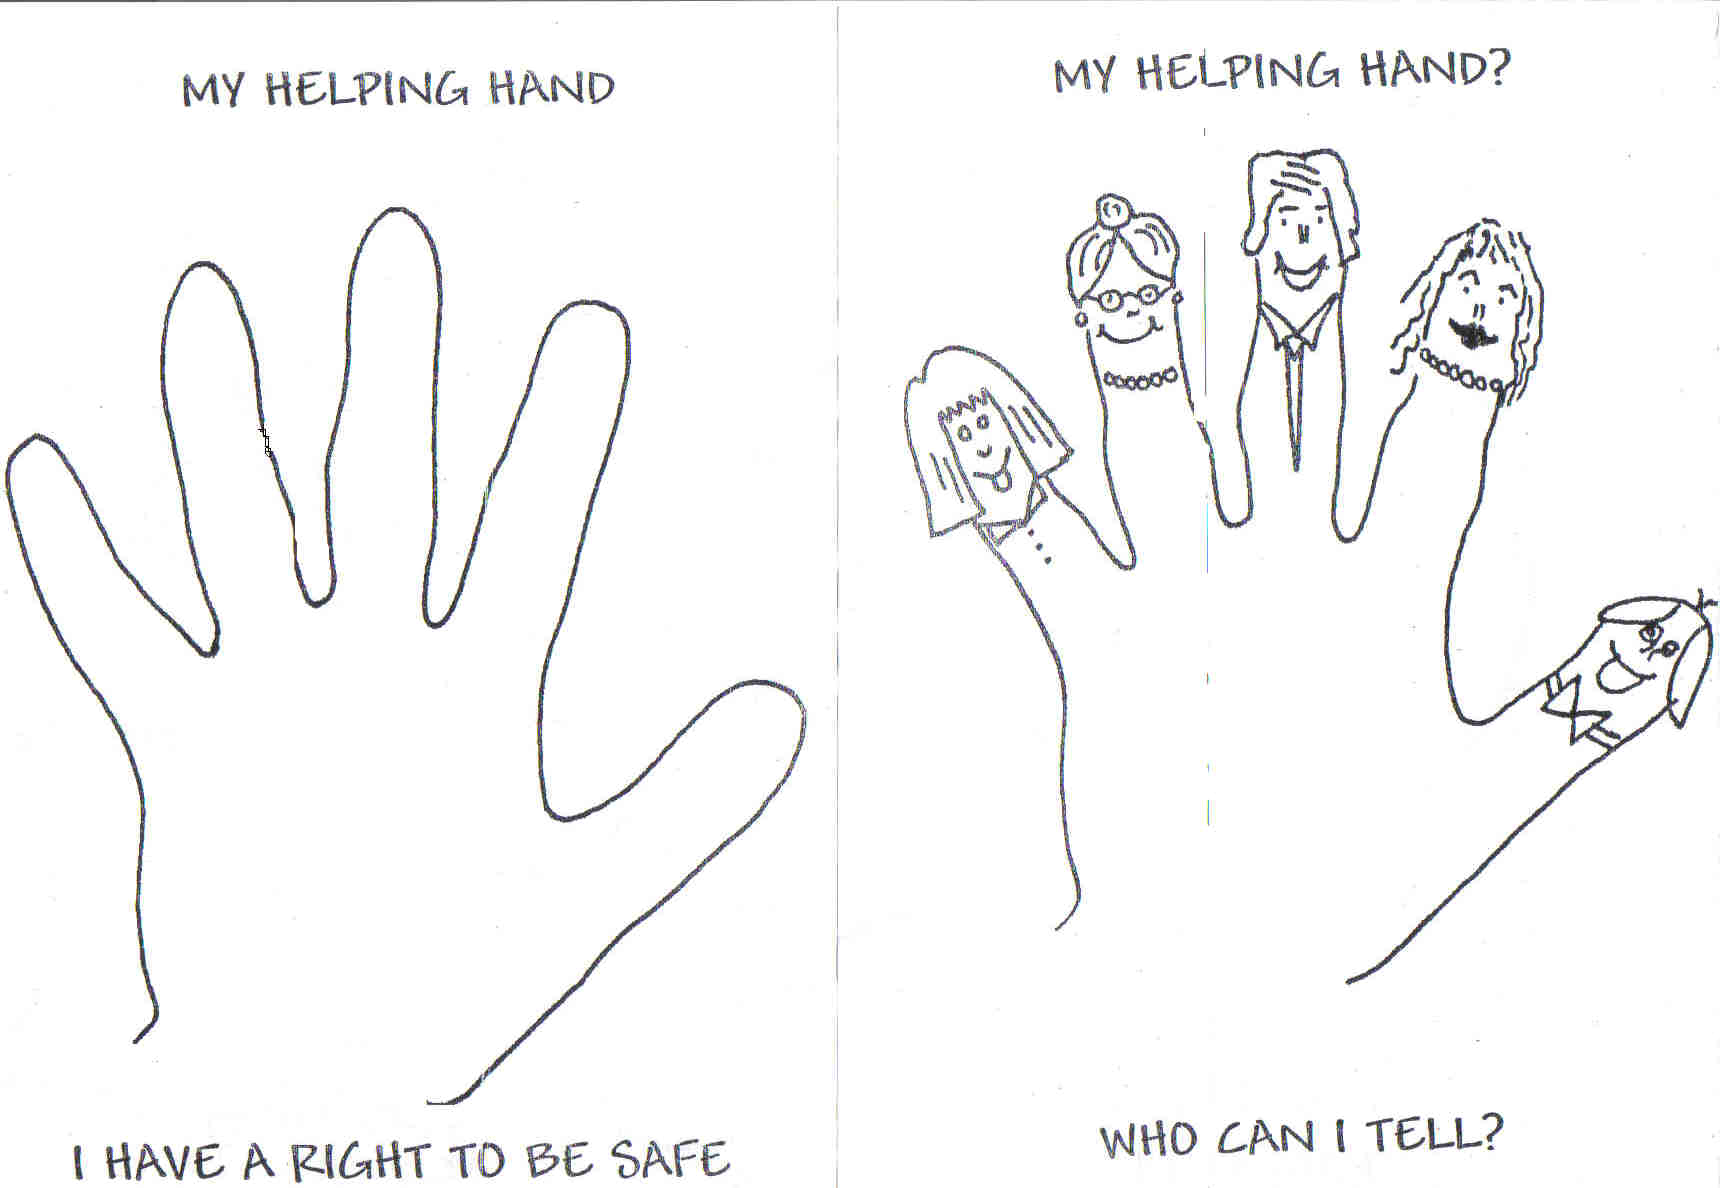 A Guide To Creating A Safety Hand For Each Guide